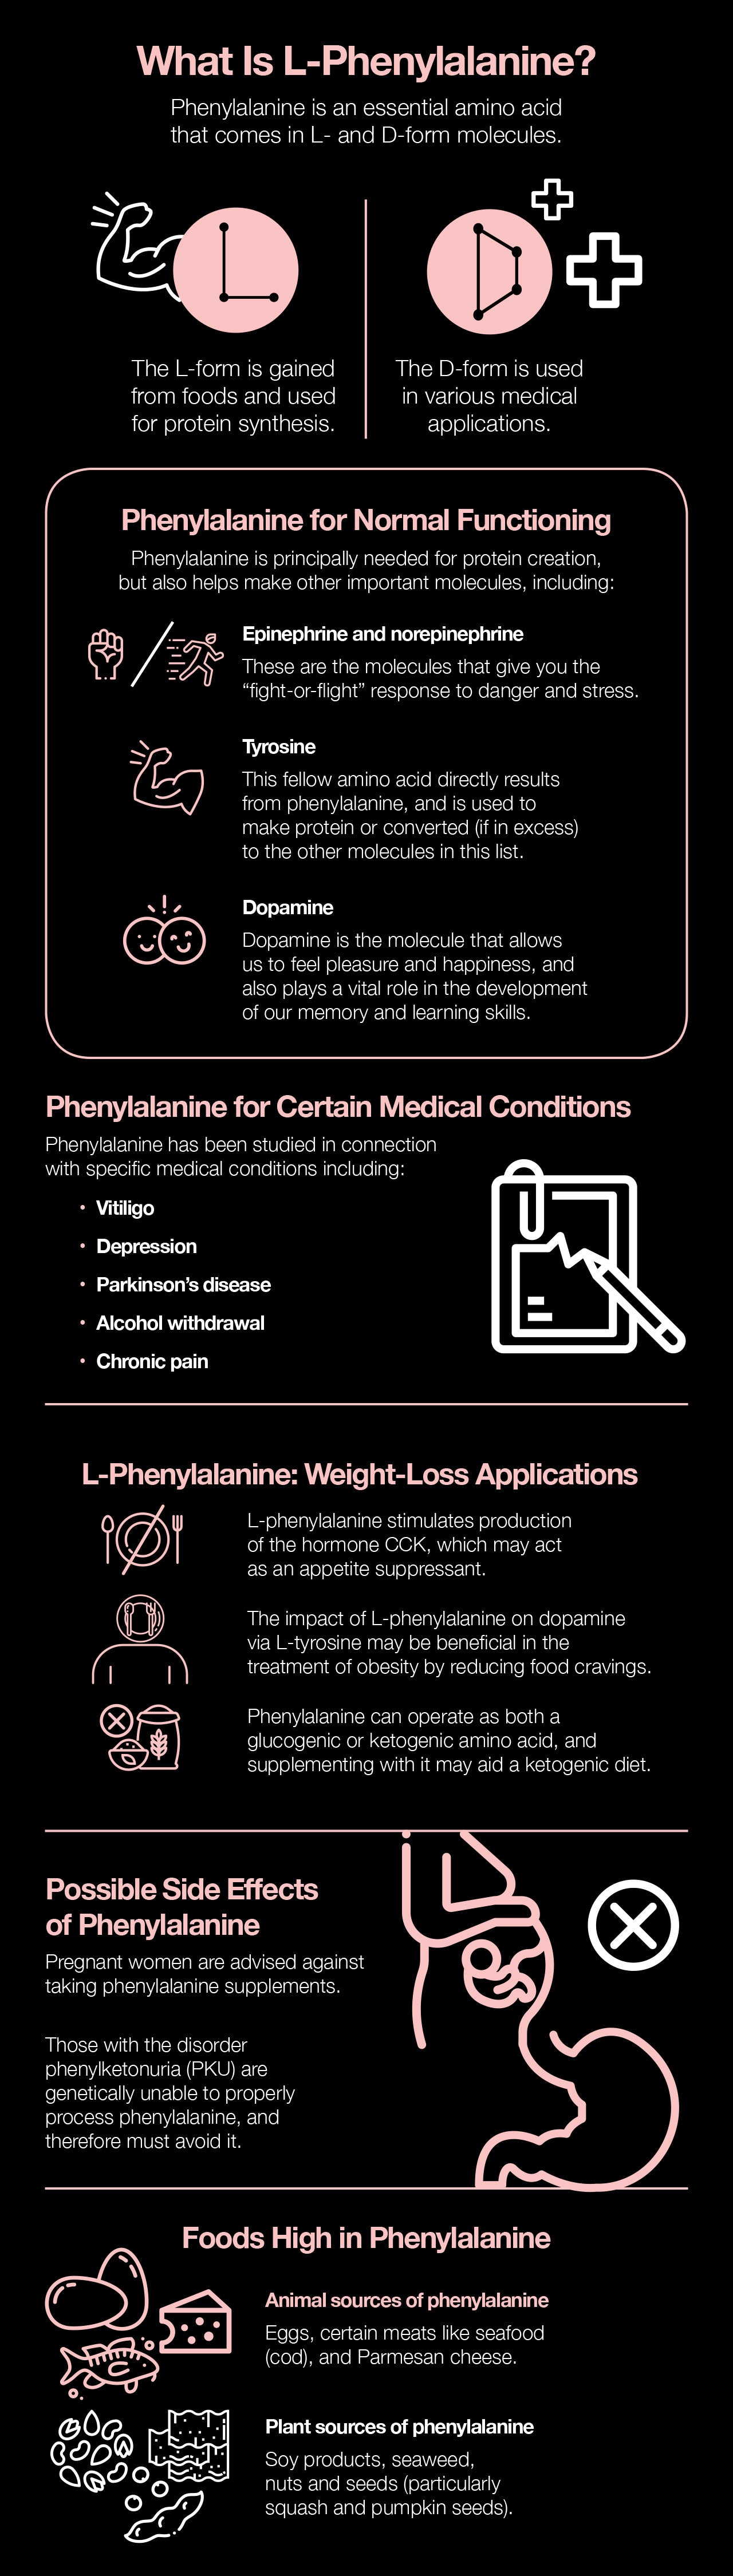 L-phenylalanine supplements for weight loss. Do they work?